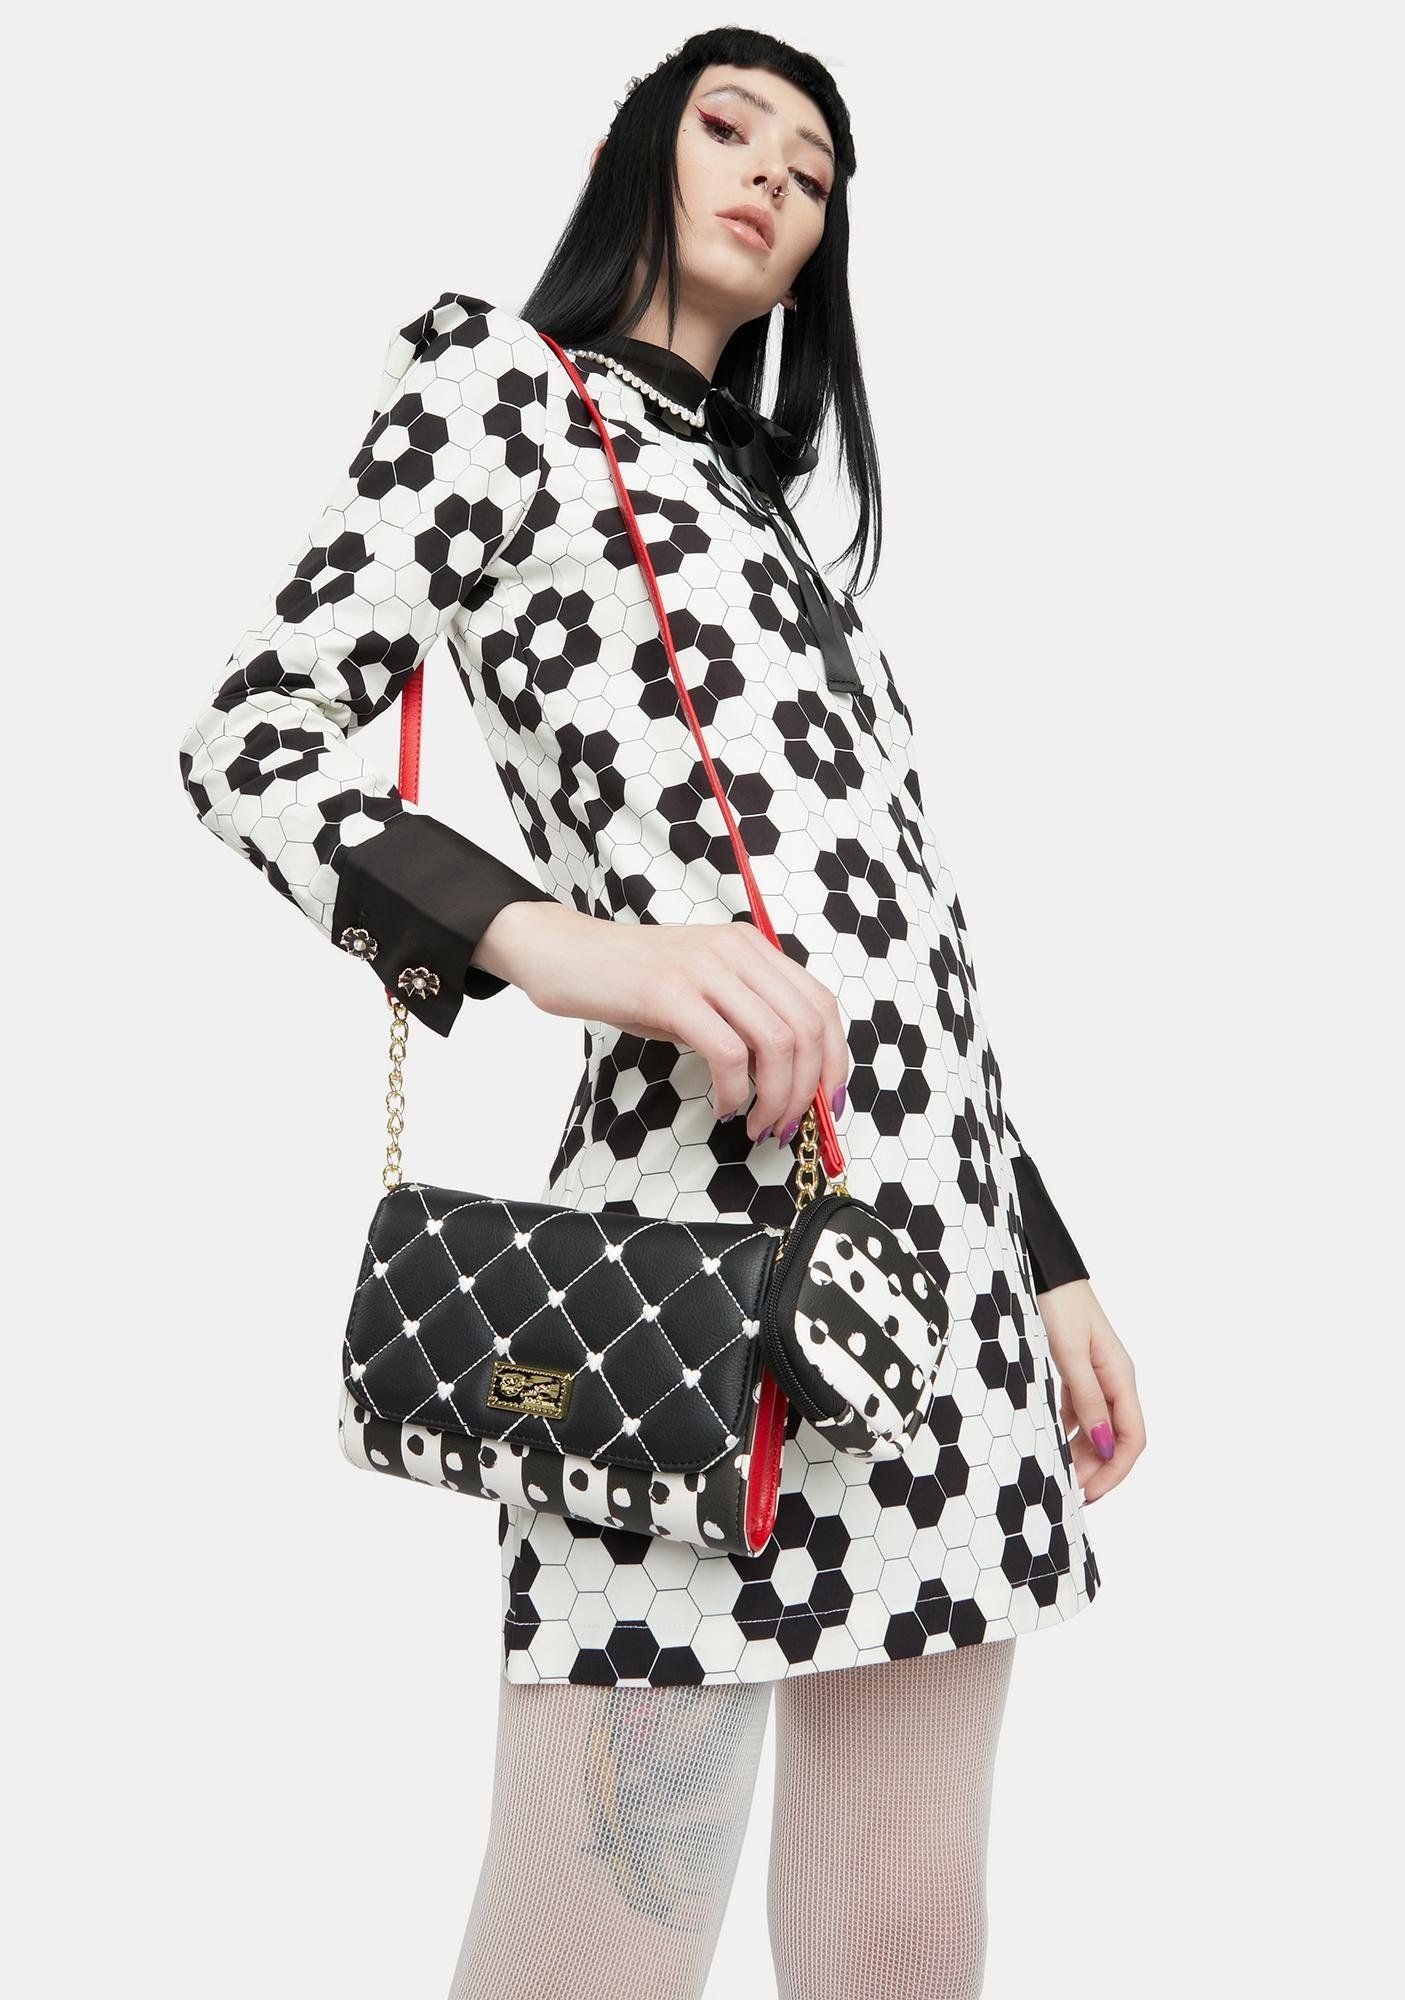 Betsey Johnson Black Quilted PVC Dome Crossbody Bag